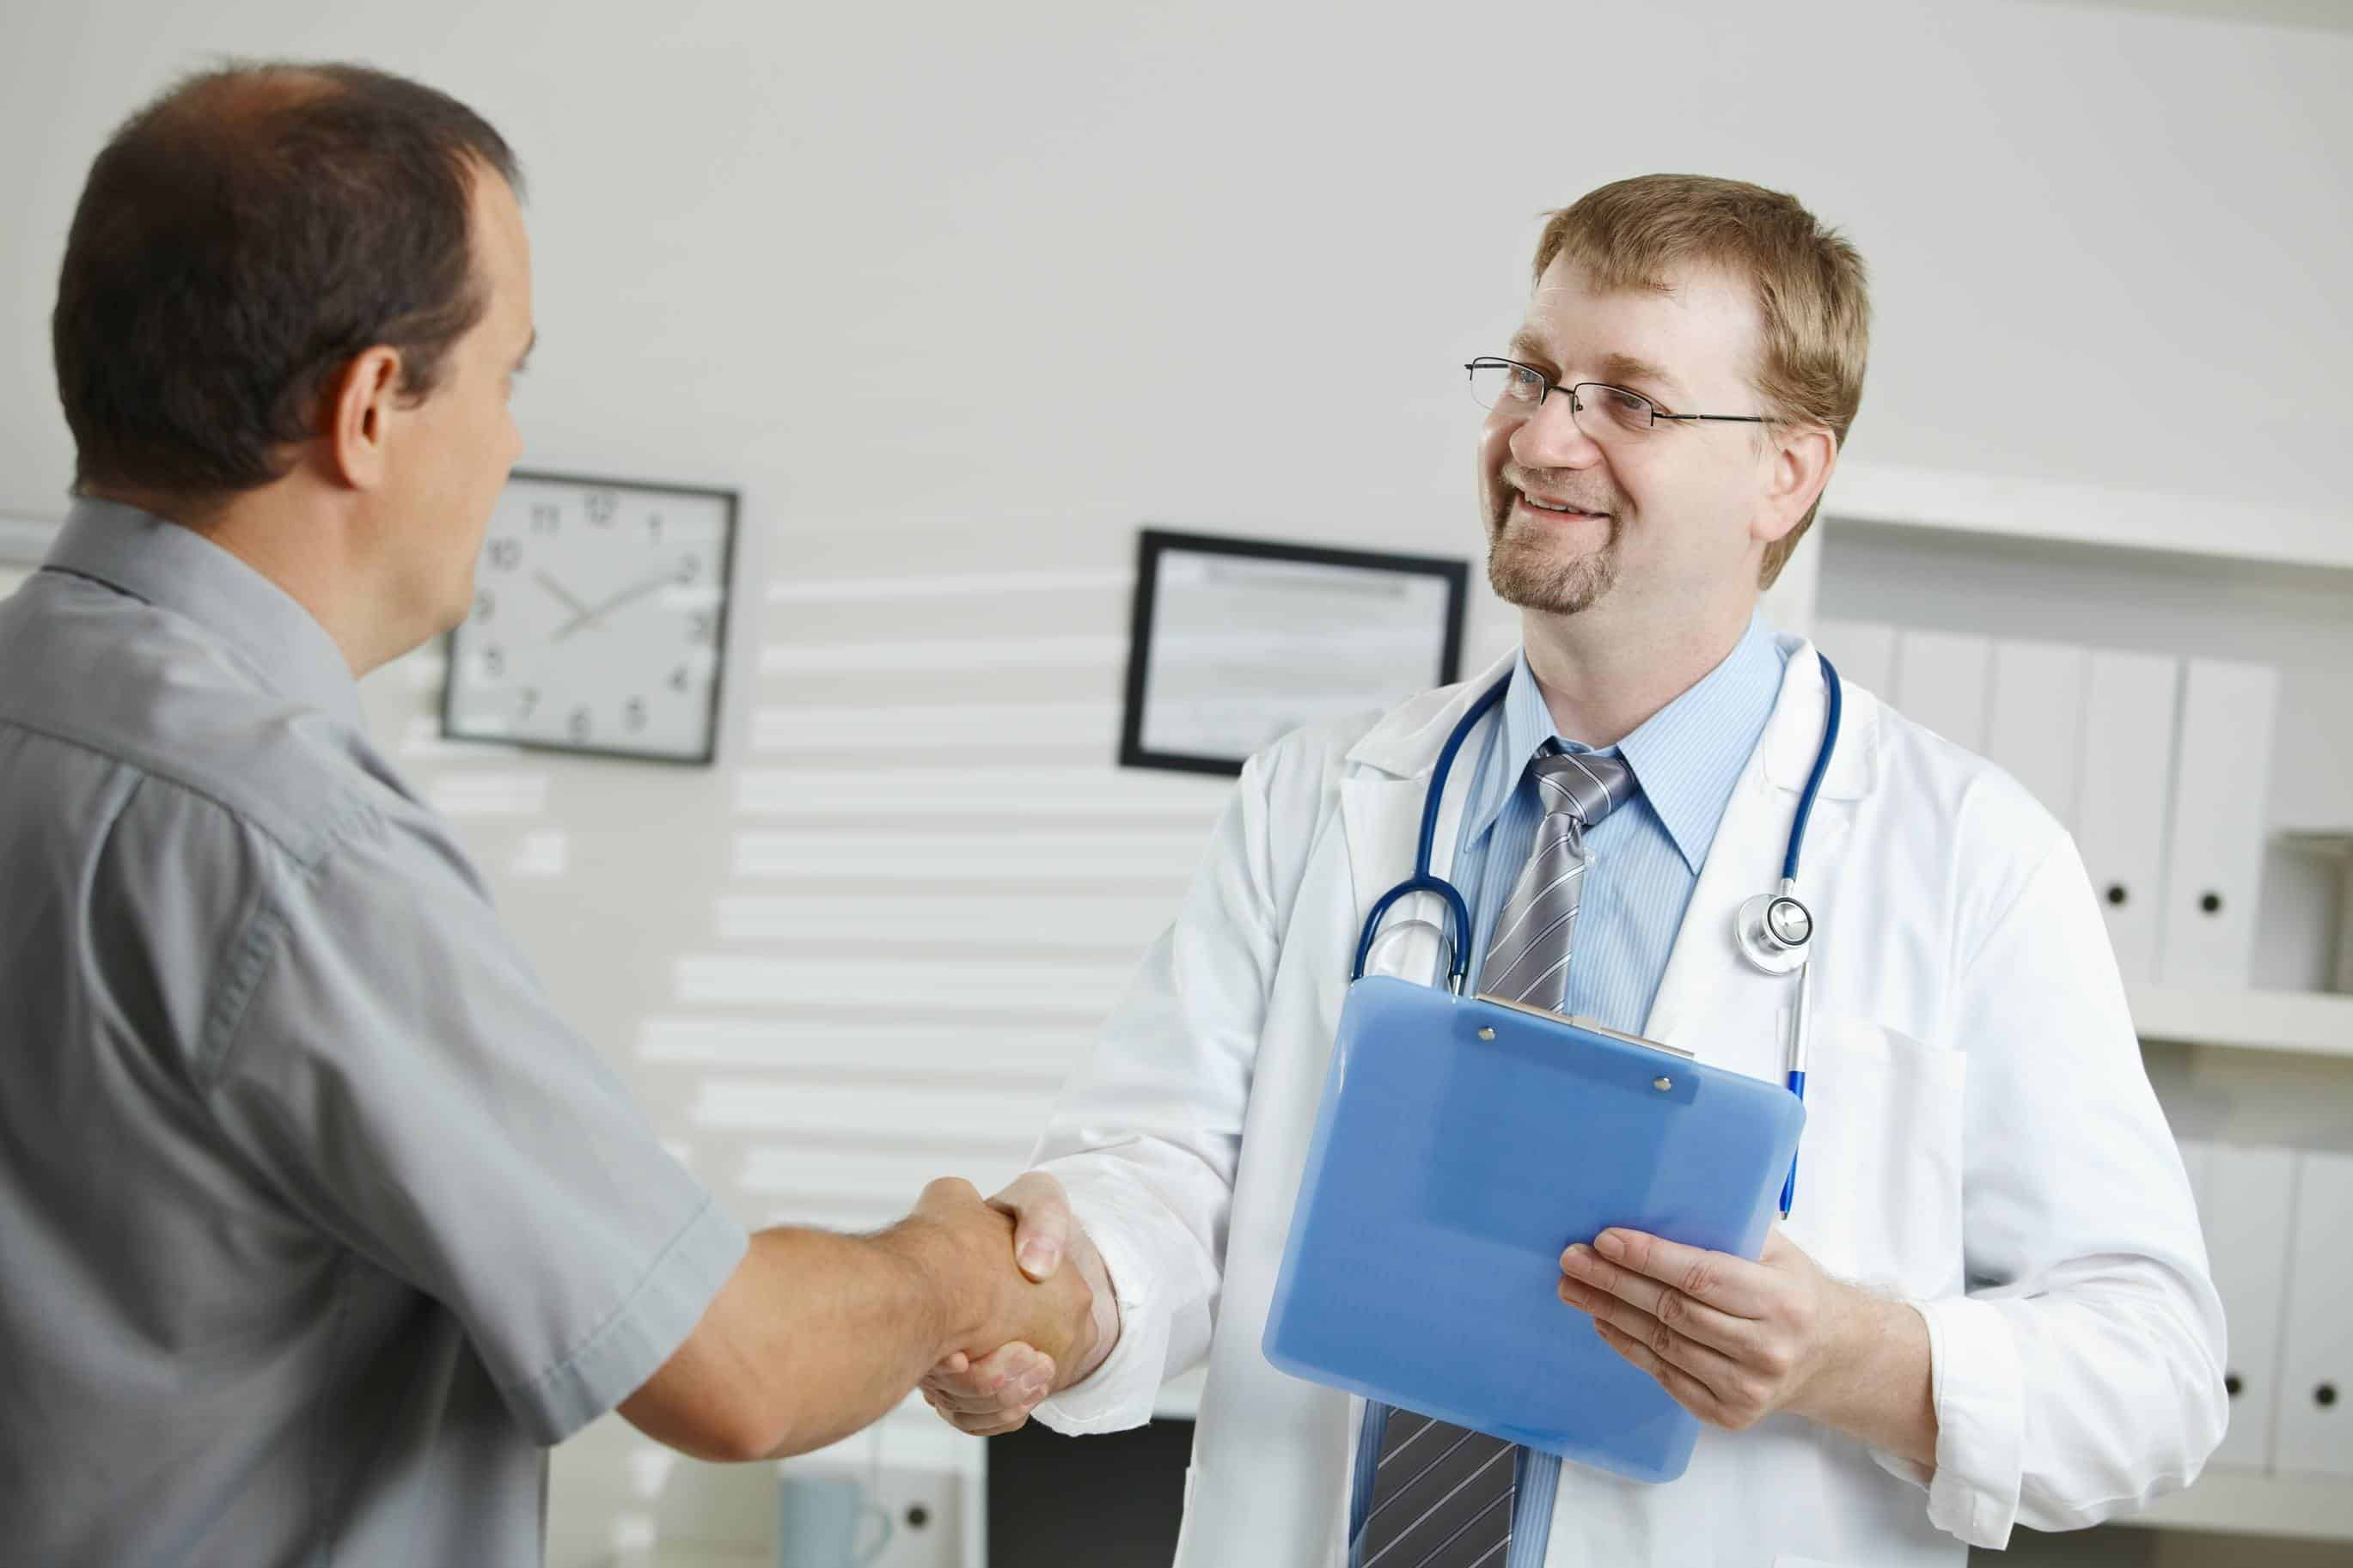 Why Won't Adjuster Pay for Doctor Bills?